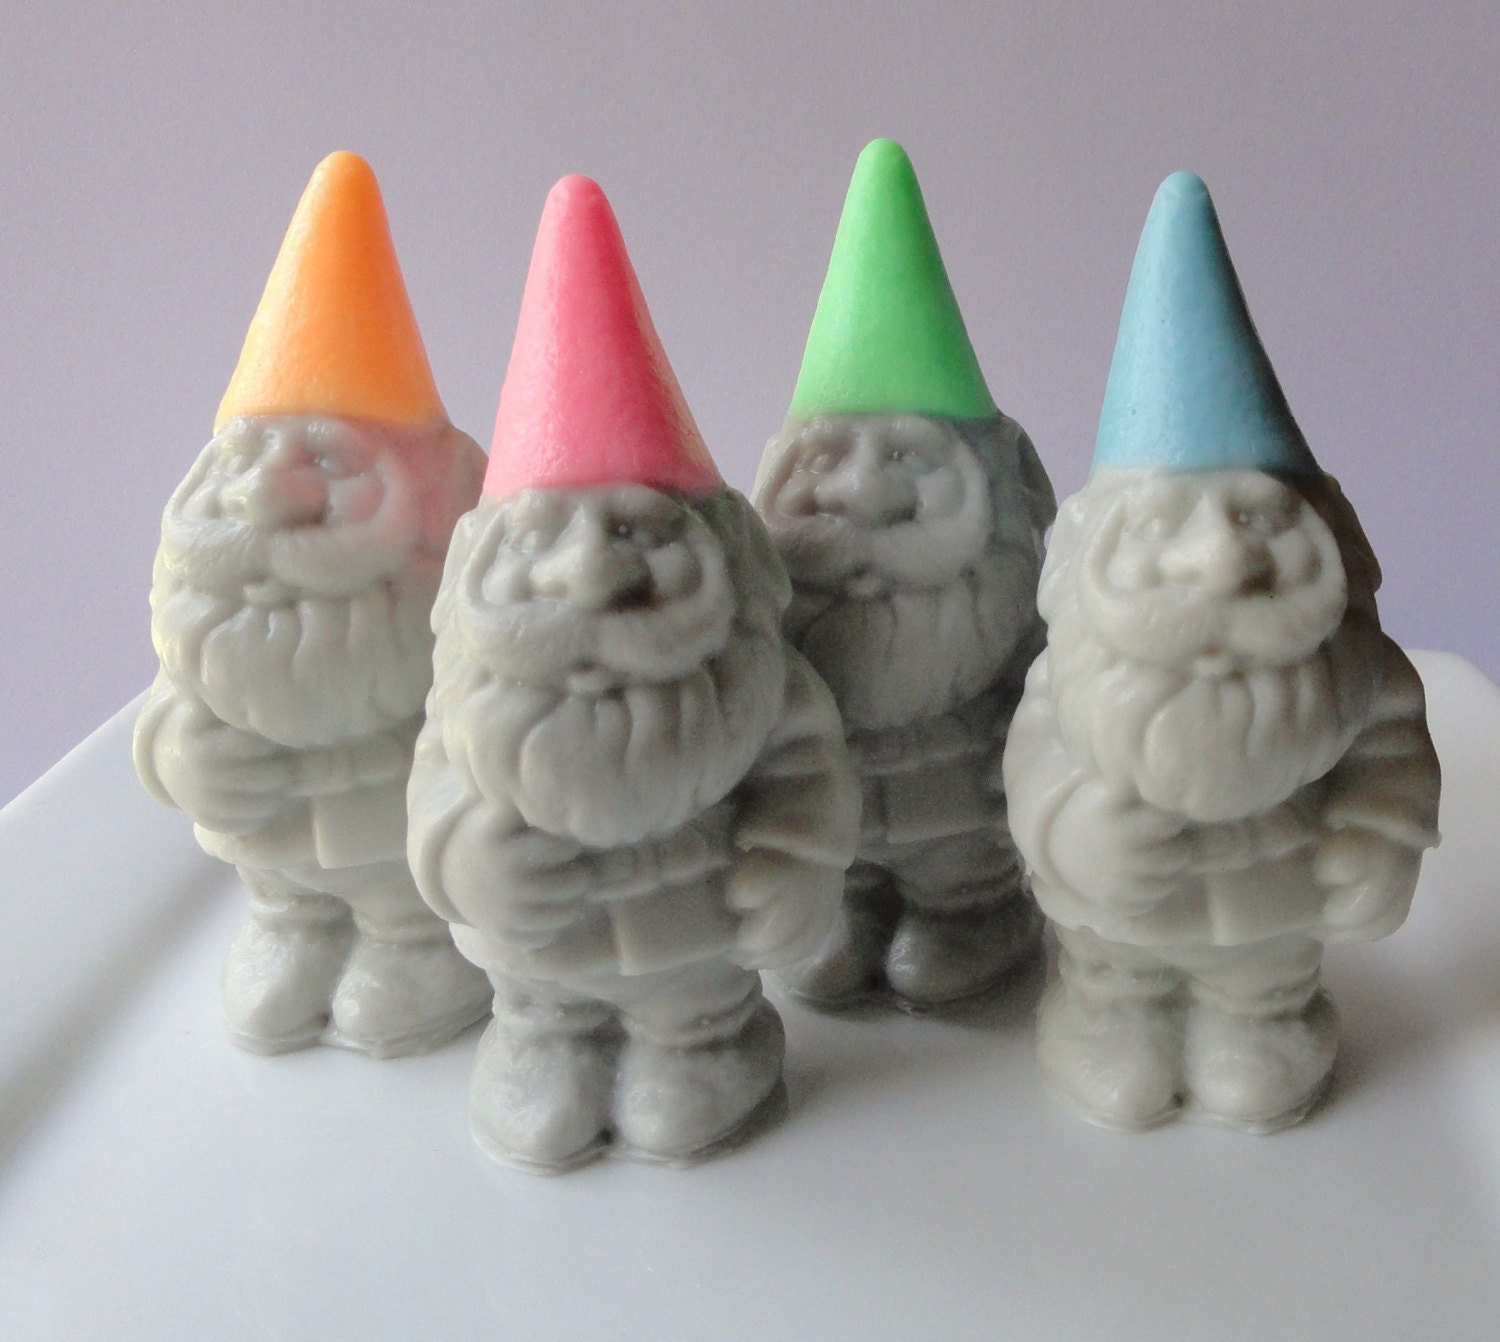 Gnome 4: Garden Gnome Soap Gift Set All 4 Gnomes Green By KcSoapsNmore